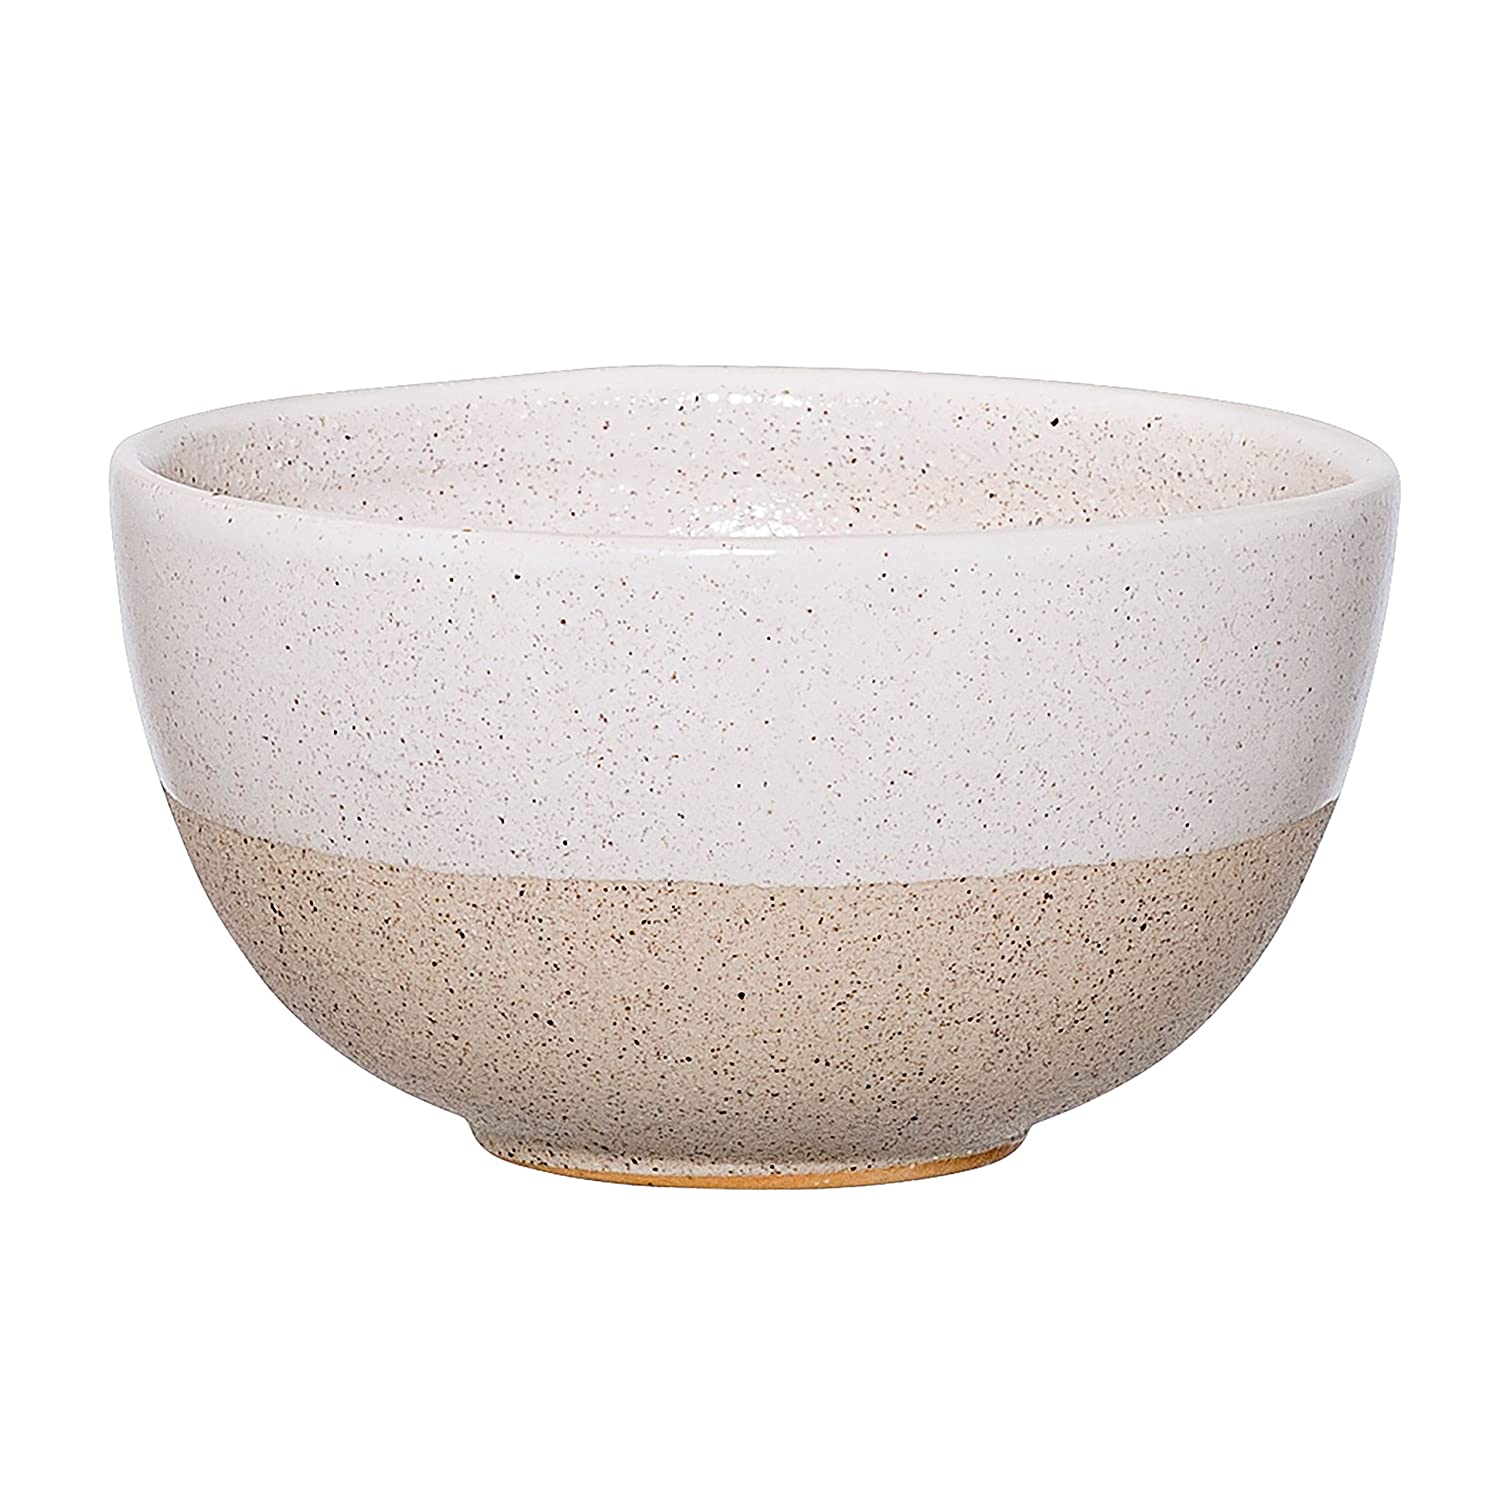 Bloomingville A75233285 Ceramic Barbara Bowl, Multicolor